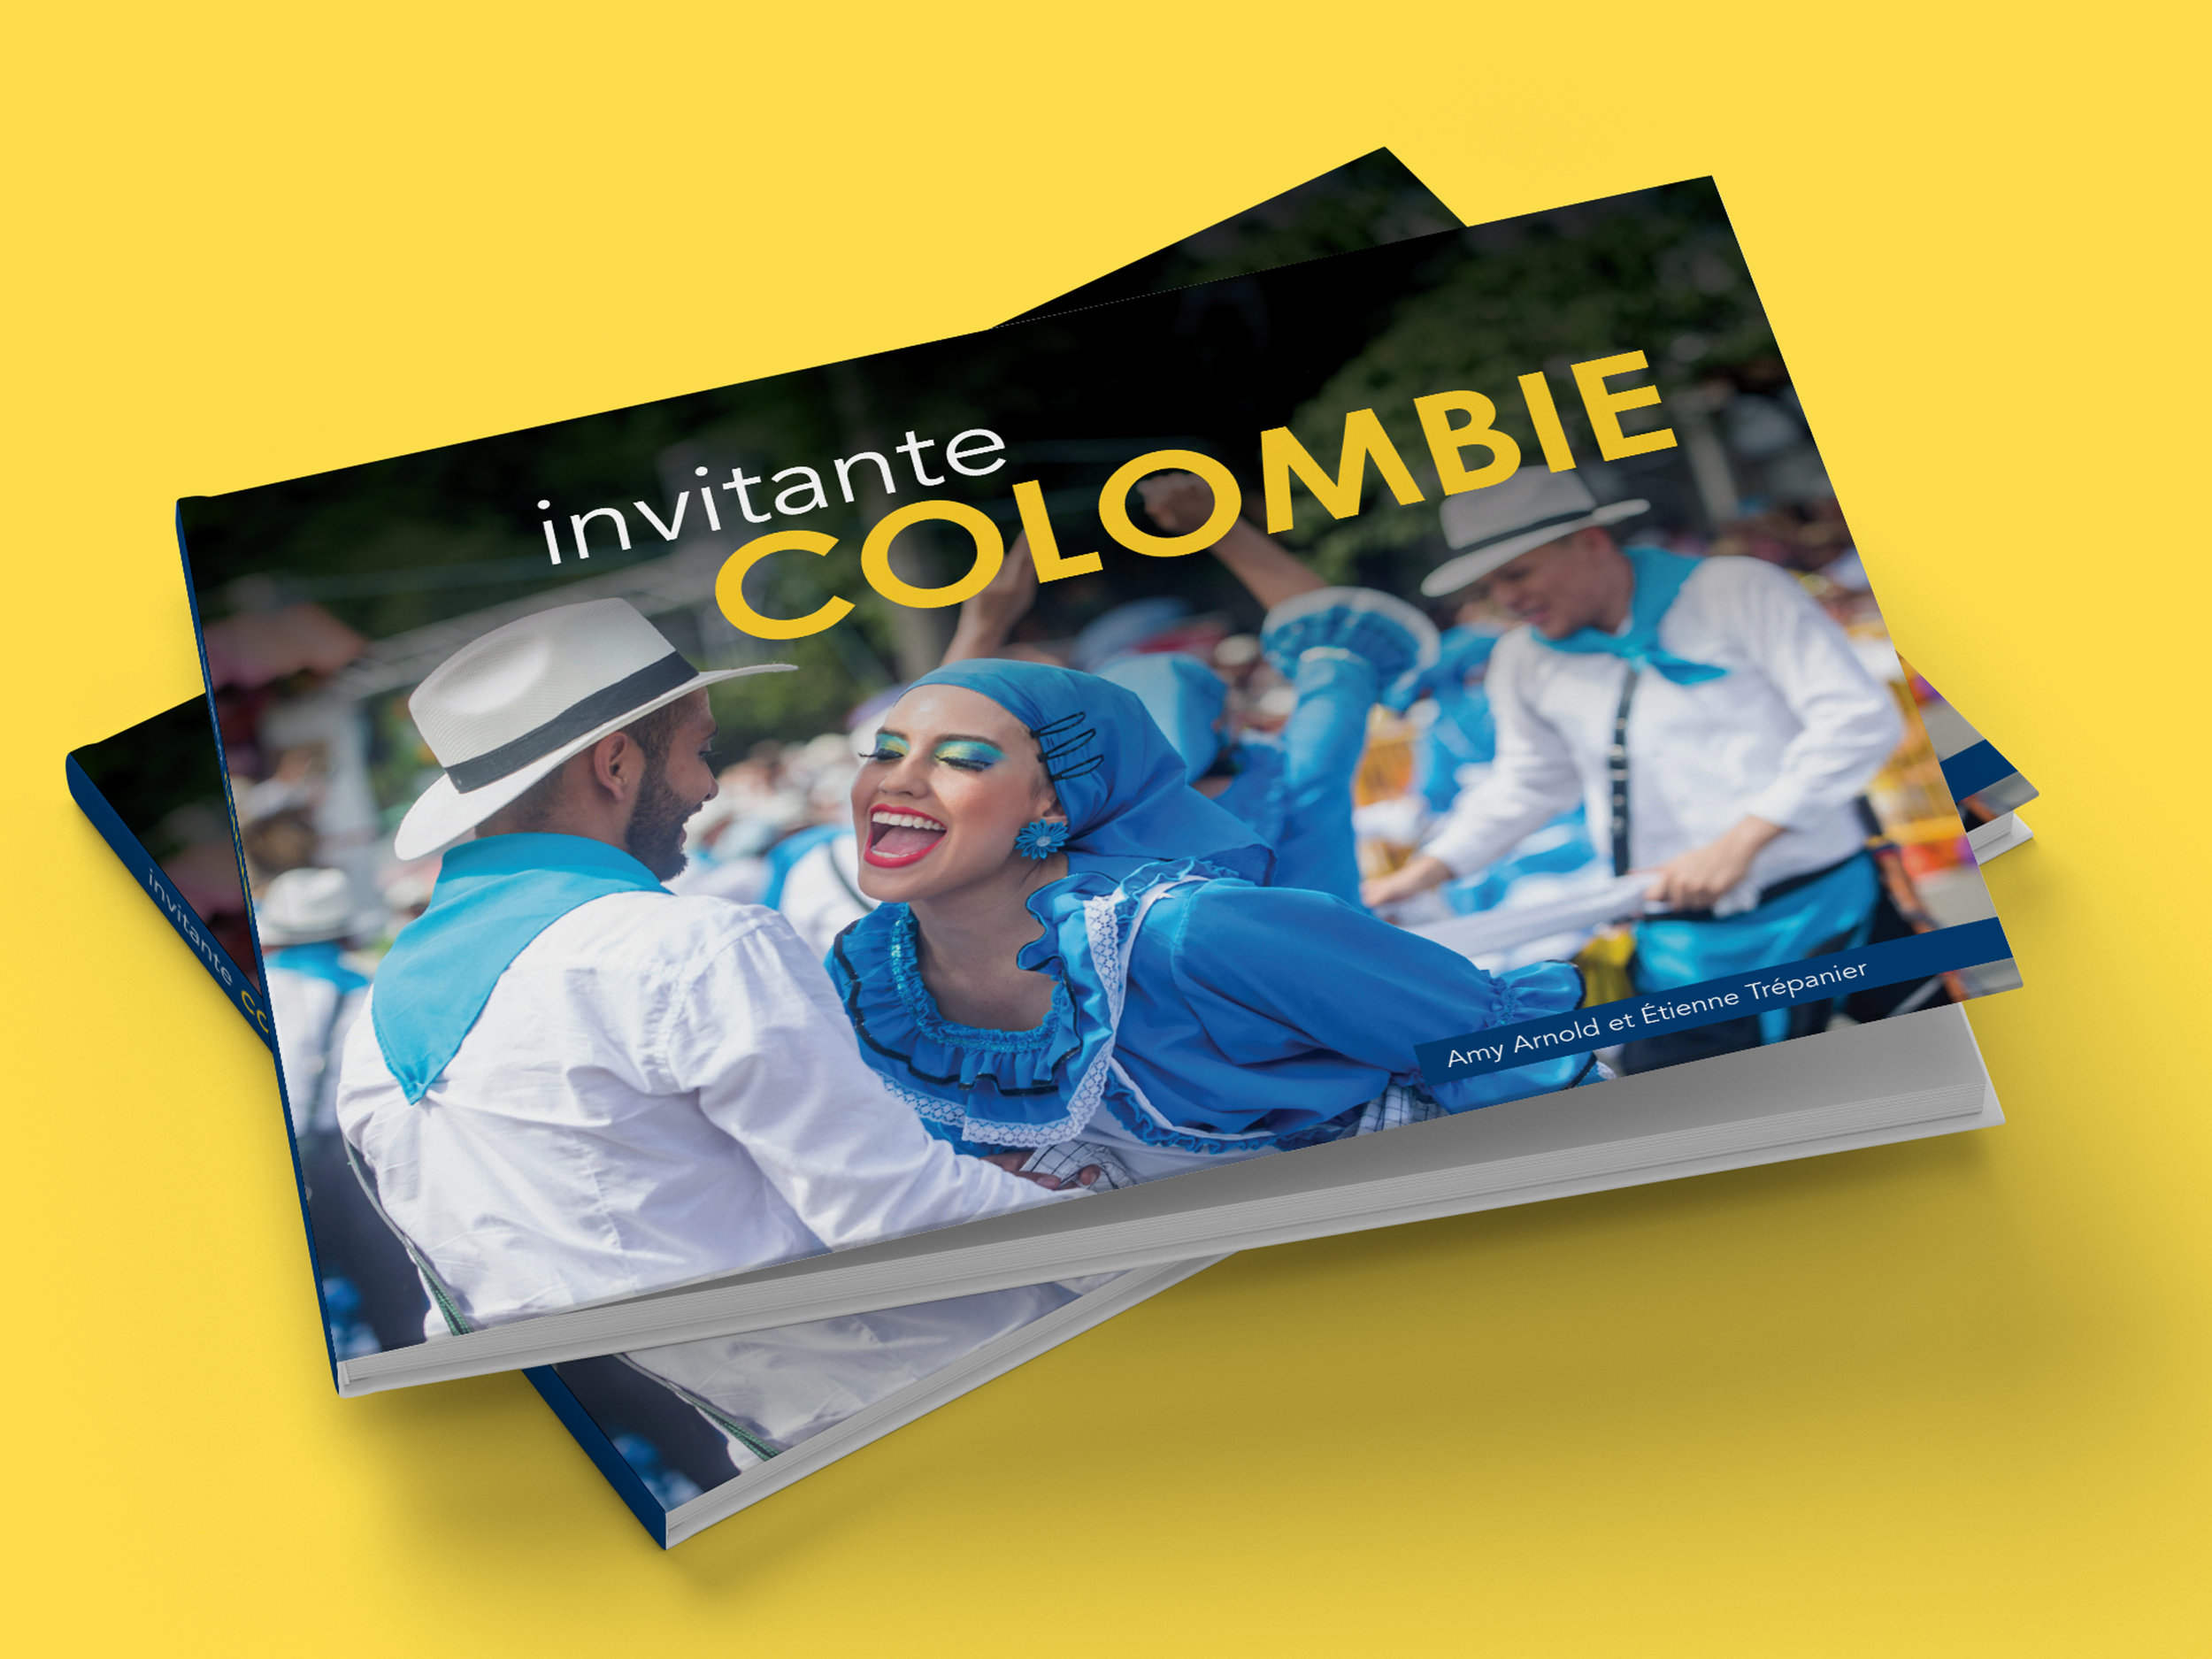 Travel Book Design - Design of French language travel book 'Invitante Colombie'.